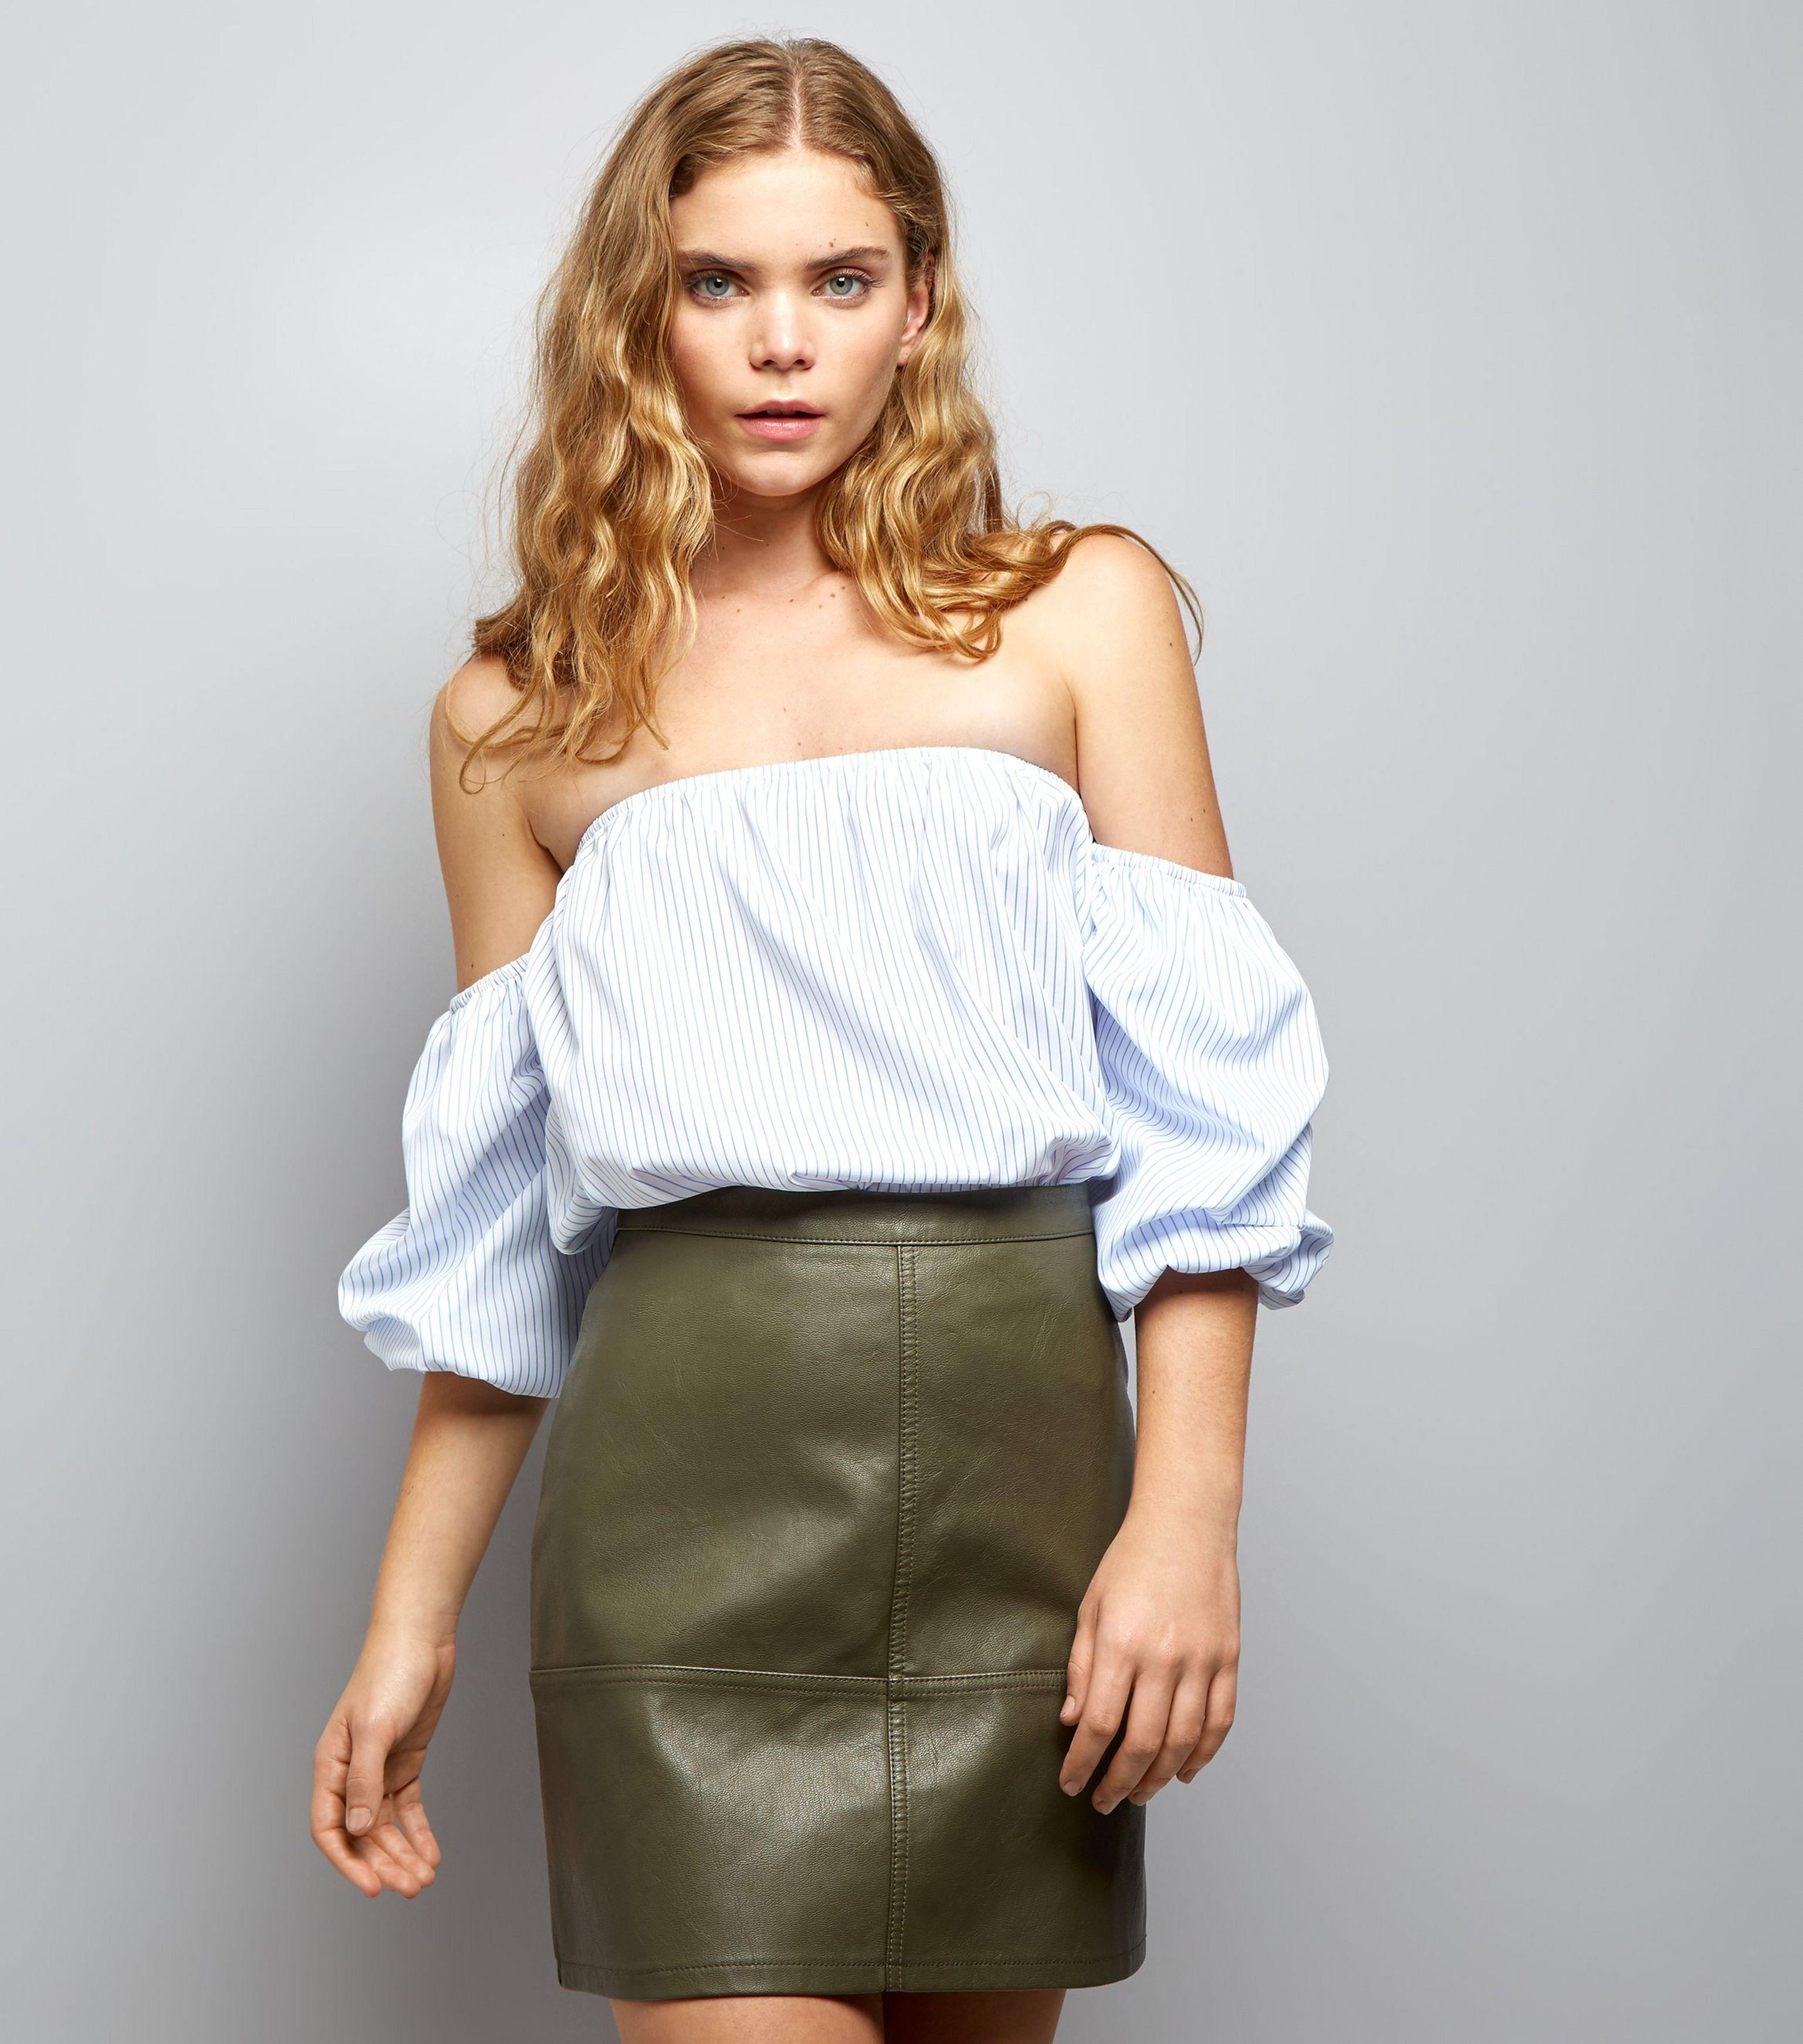 a30a14f2a New Look Leather Look Skirt – DACC